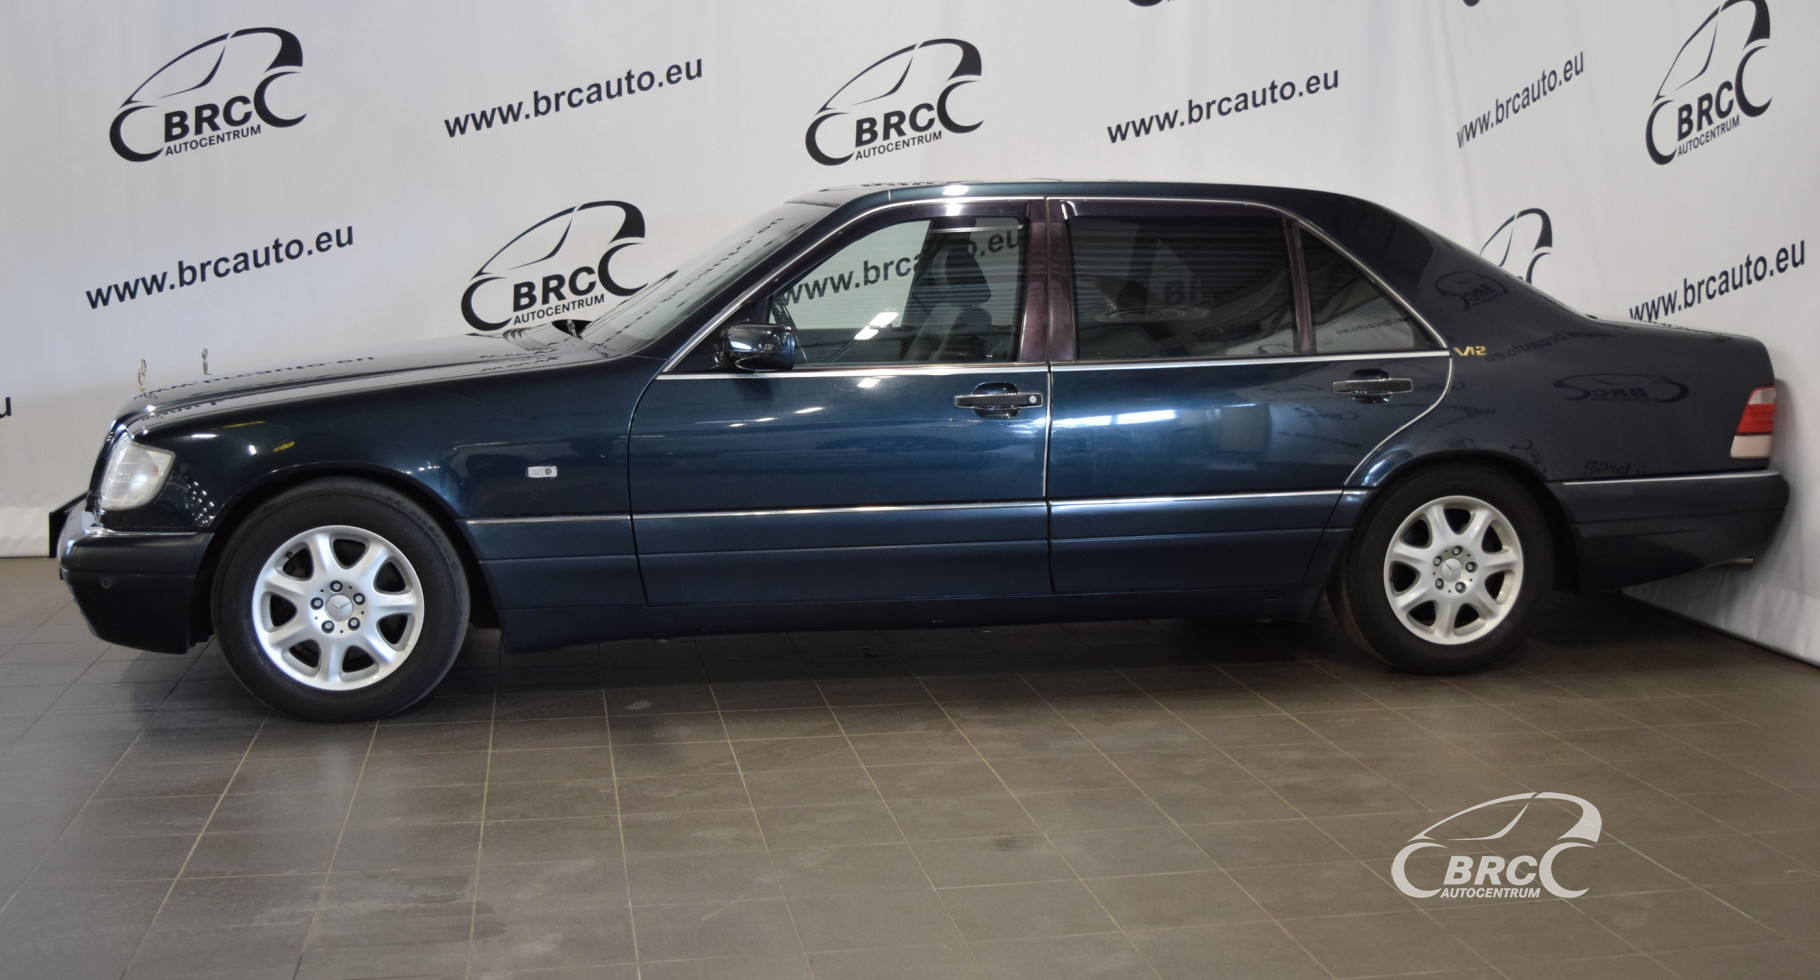 Mercedes-Benz S 600 Long V12